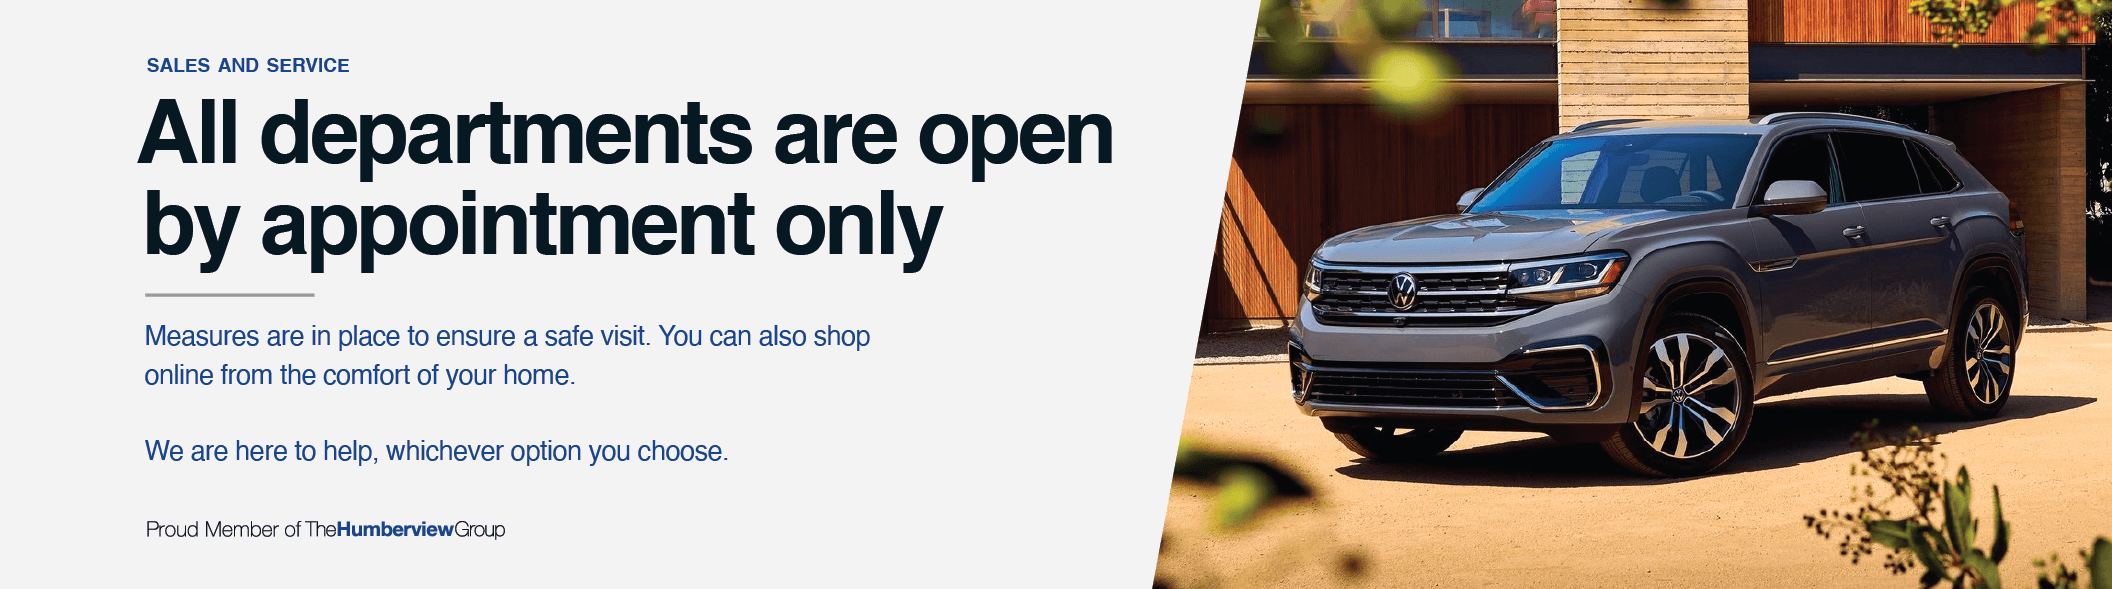 All Departments Open by Appointment Only - Volkswagen MidTown Toronto